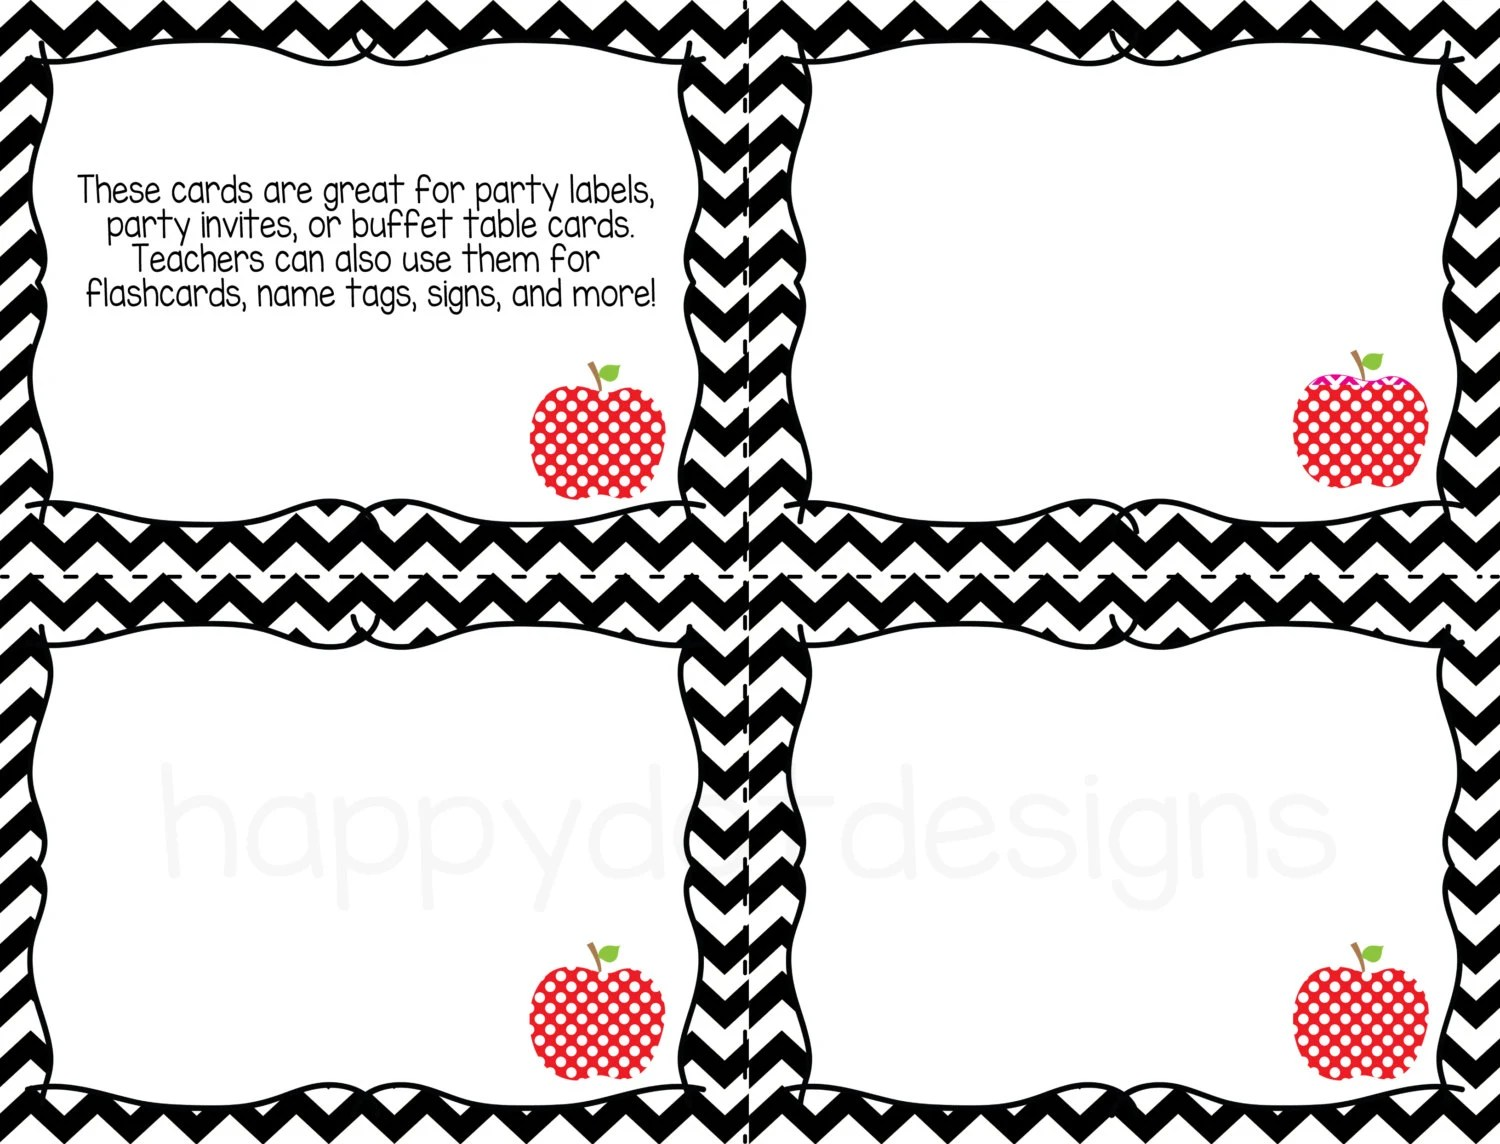 Printable Task Cards for Classroom Home School by